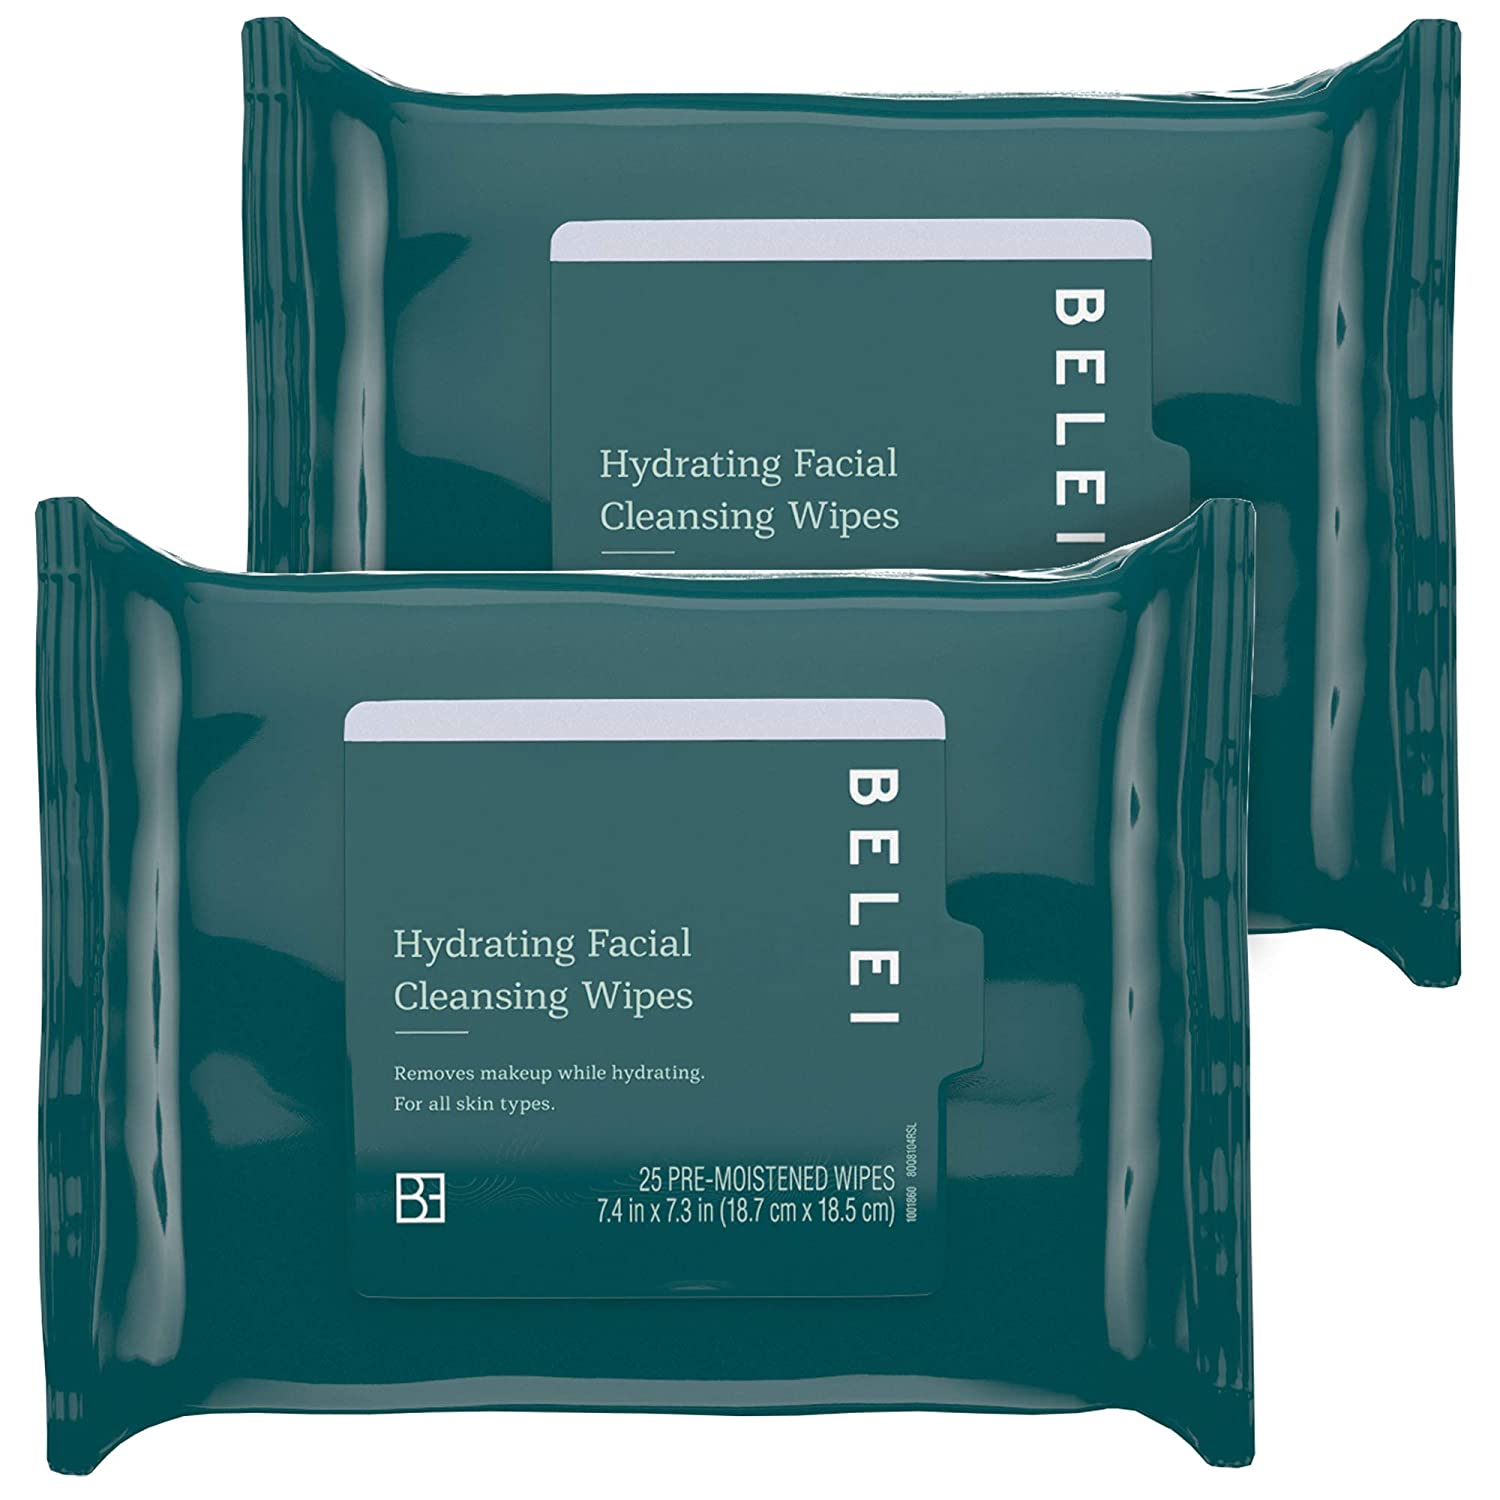 2-pack 25-Count Belei Hydrating facial Cleansing Wipes $6.30 w/ Subscribe & Save + Free Shipping w/ Prime or $25+